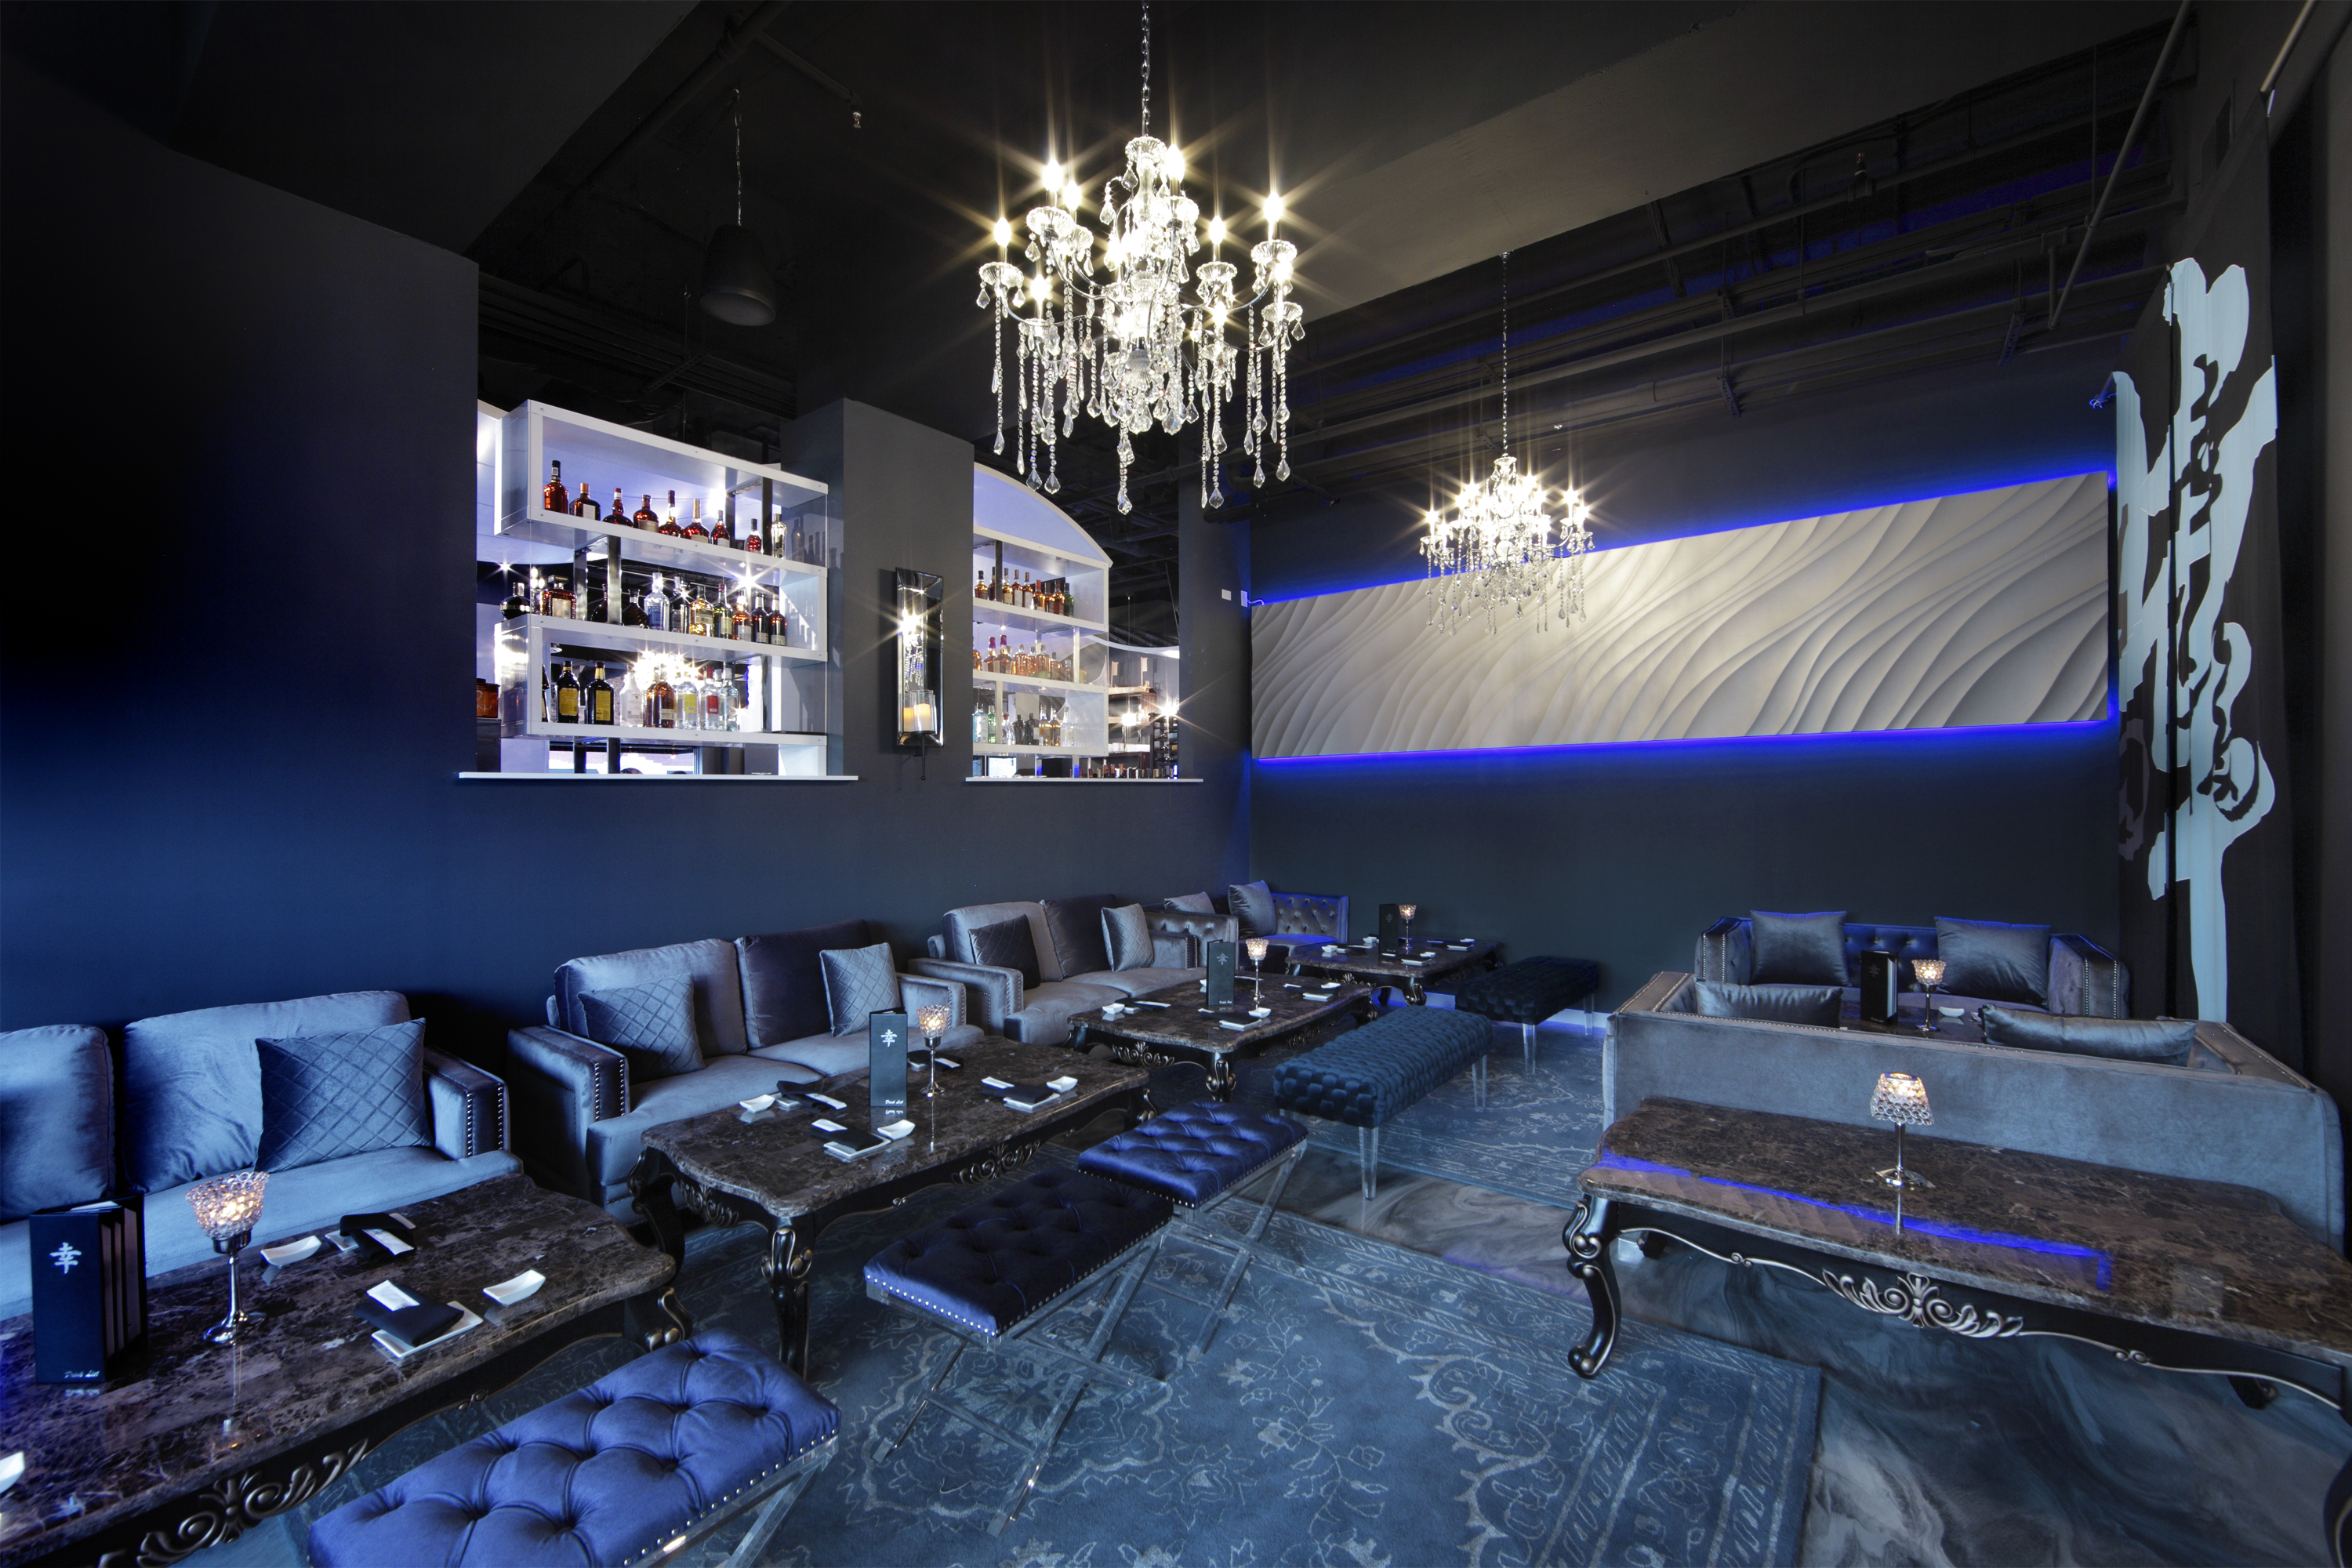 Restaurant Design Trends to Embrace in 2018 - Bleck & Bleck